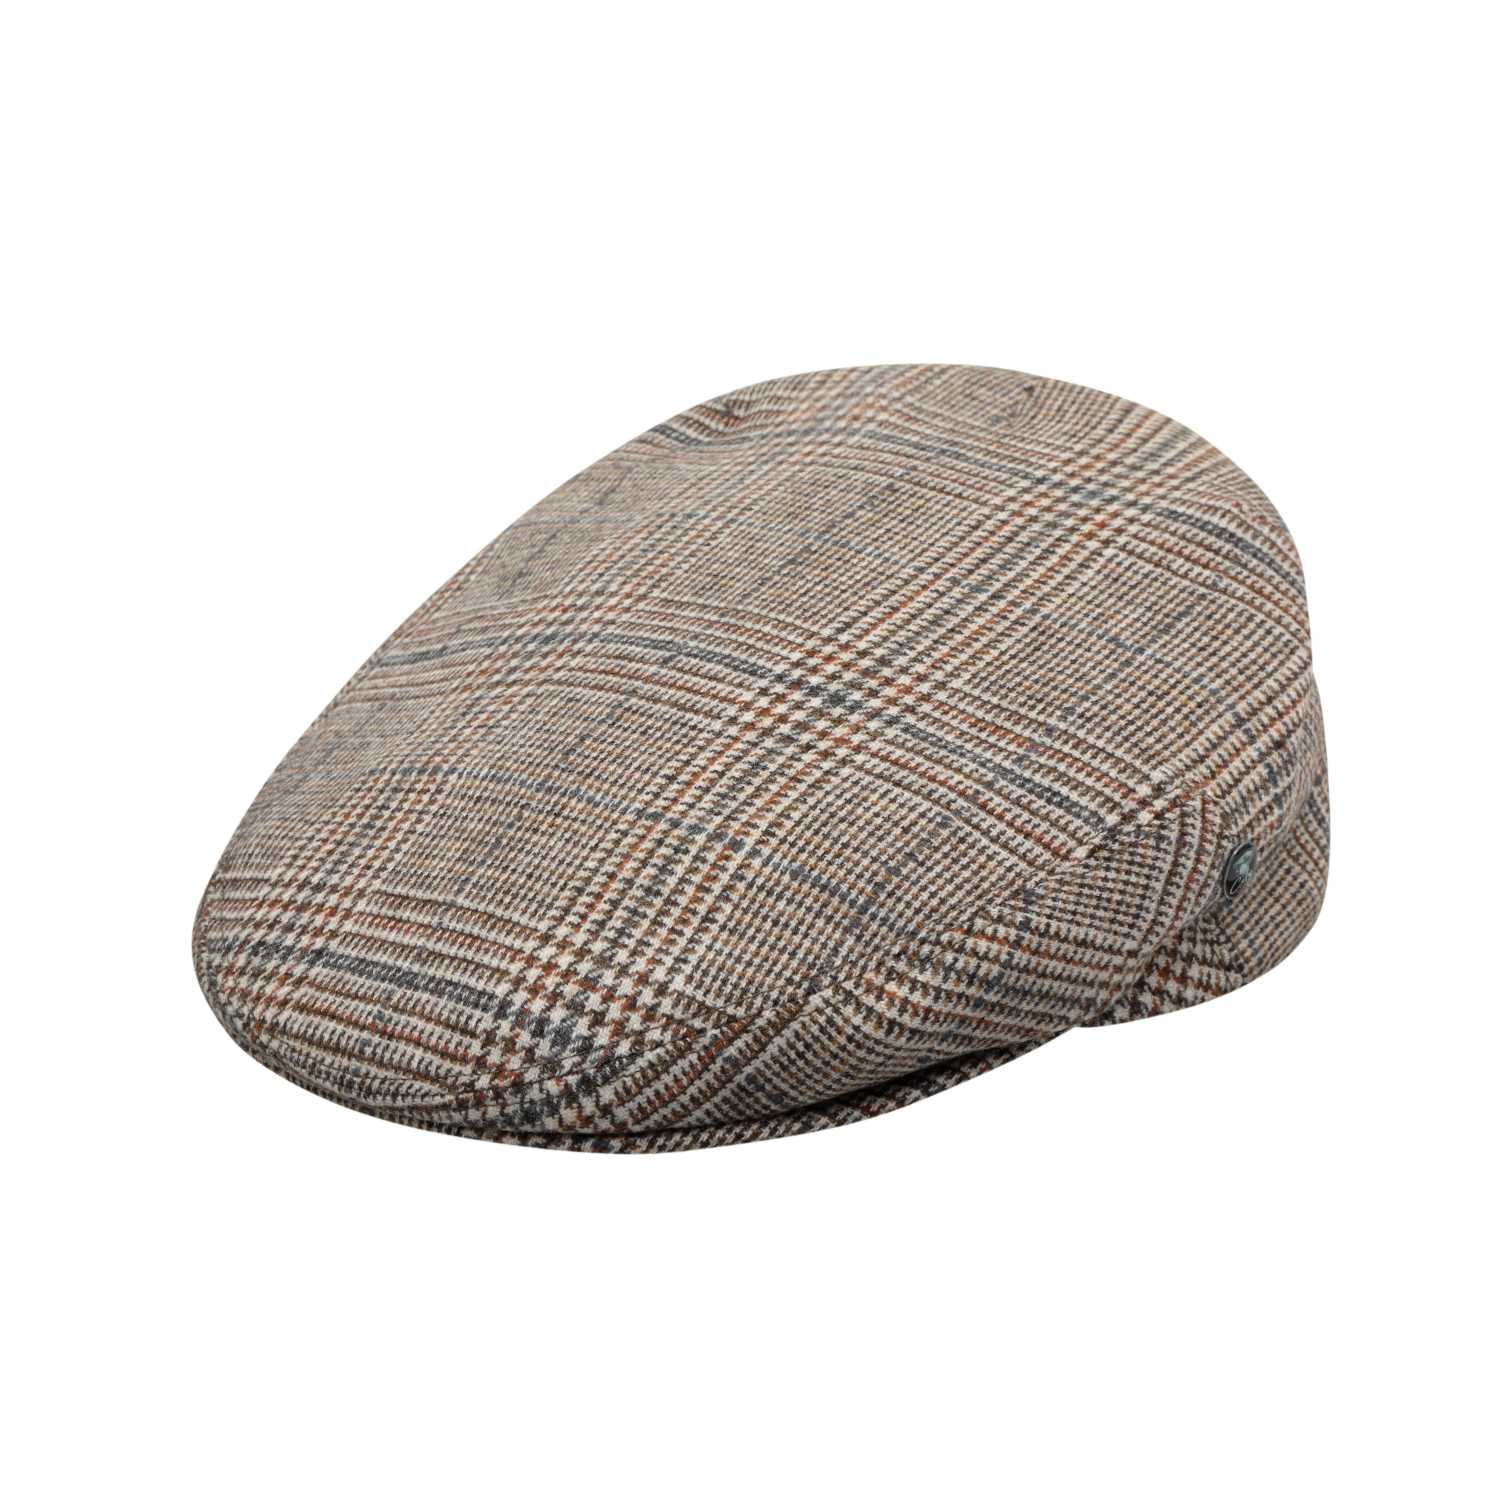 The Cashmere Choice - nsaved changes Products City Sport - Comfort Fit - Wool Cashmere Flat Cap - Beige Prince Charlie Check 3484